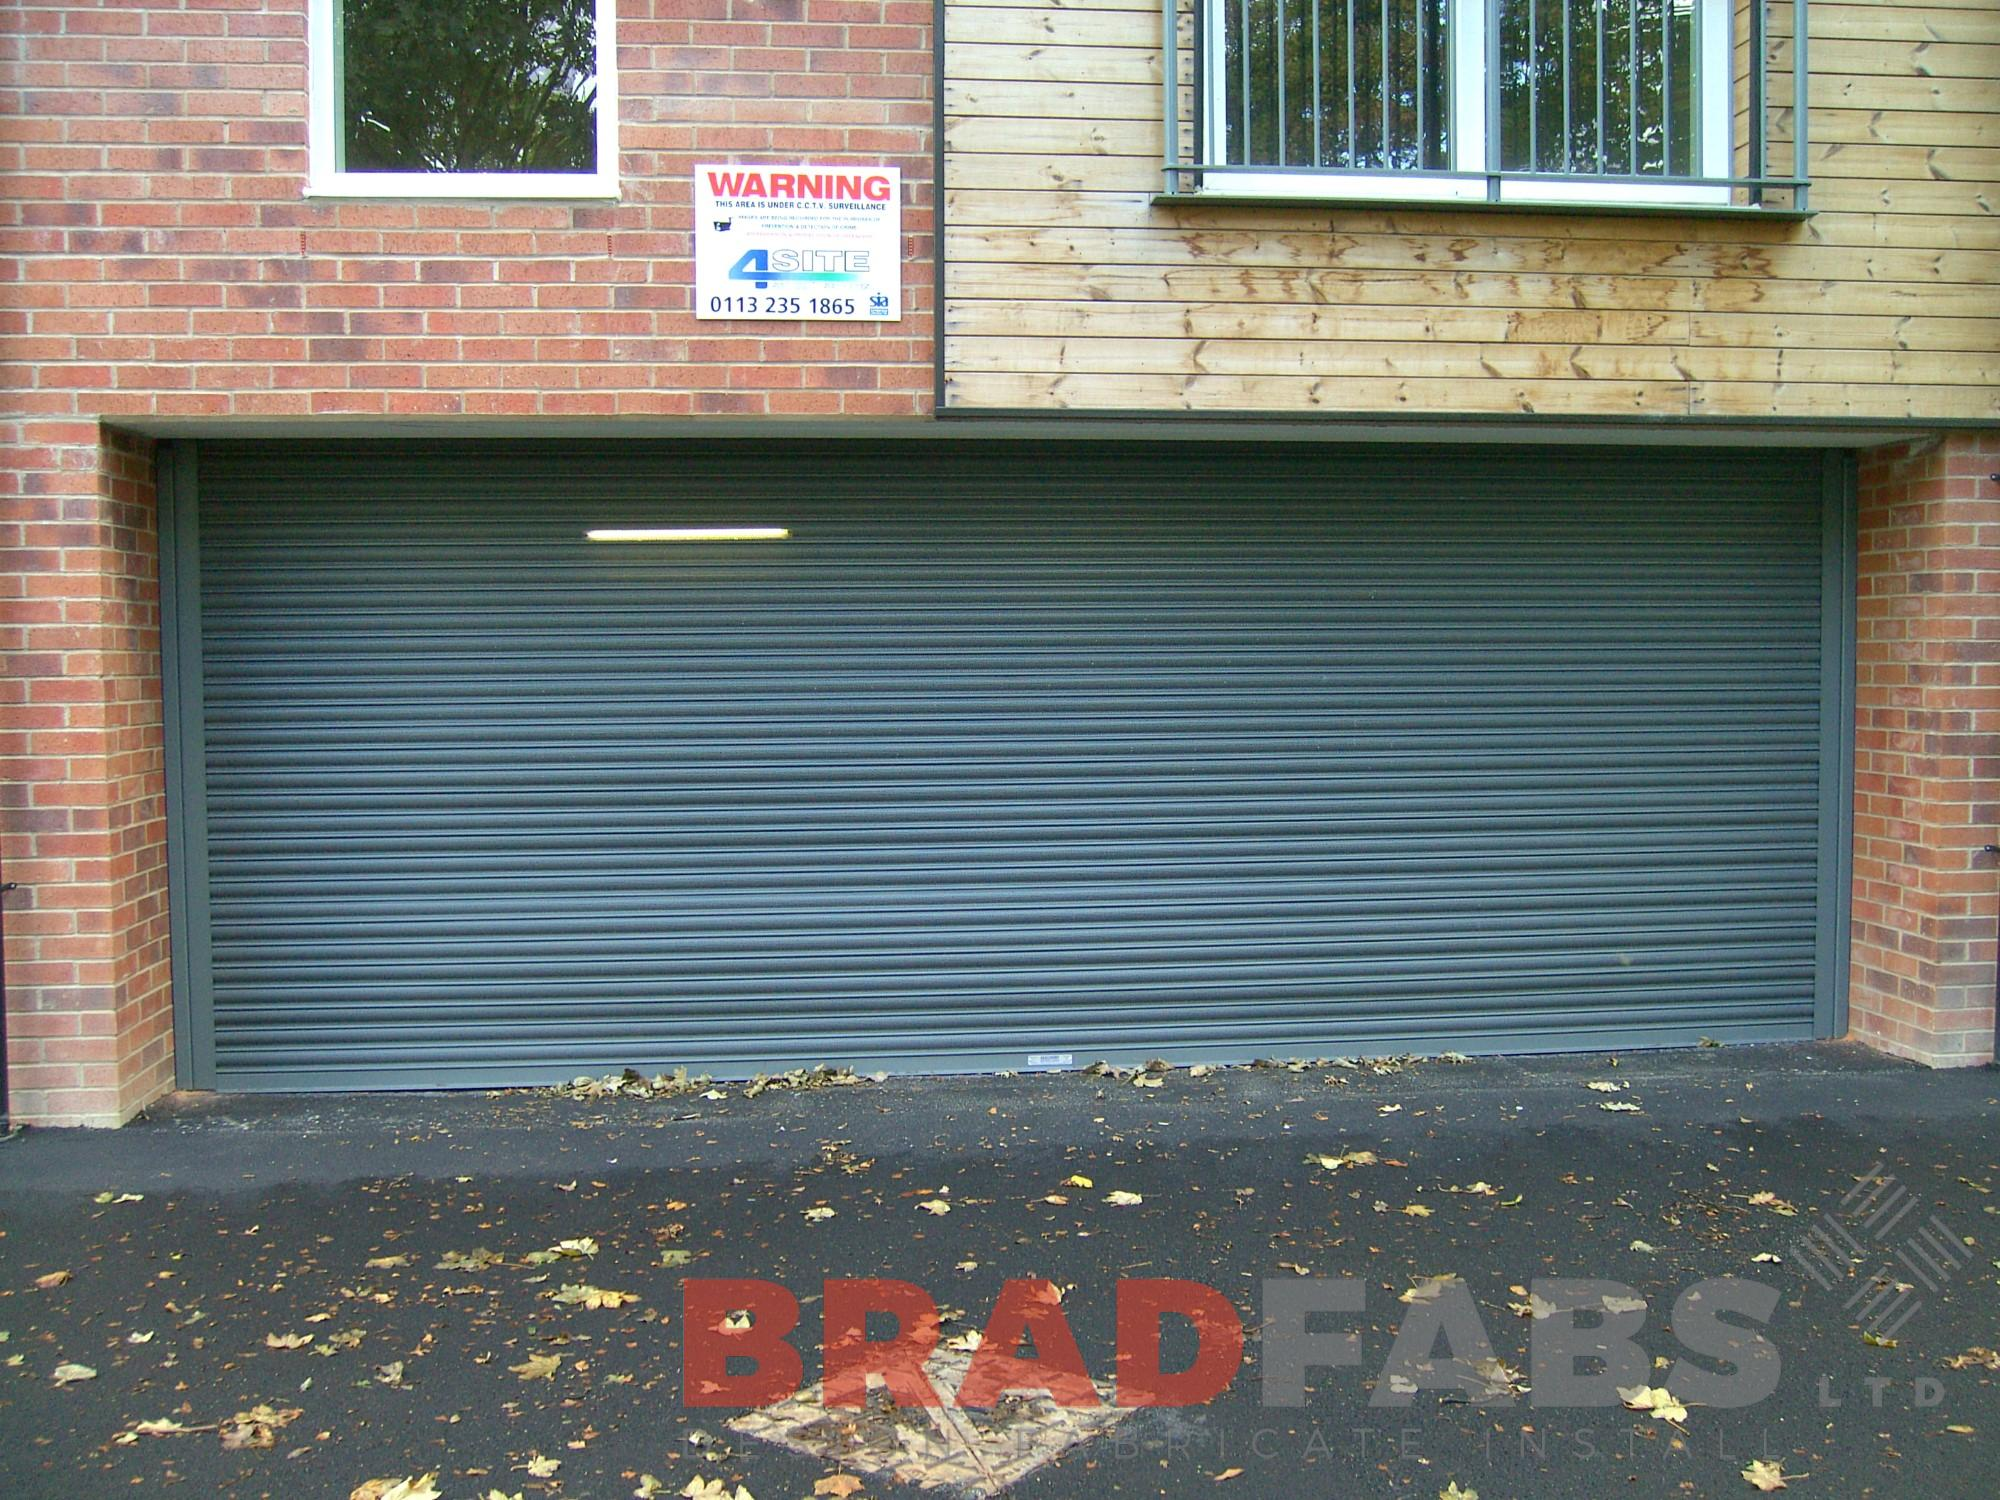 roller shutter doors fabricated in bradford, steel roller shutter doors fabricated in leeds, fob controlled roller shutter doors fabricated by bradfabs, security roller shutter doors